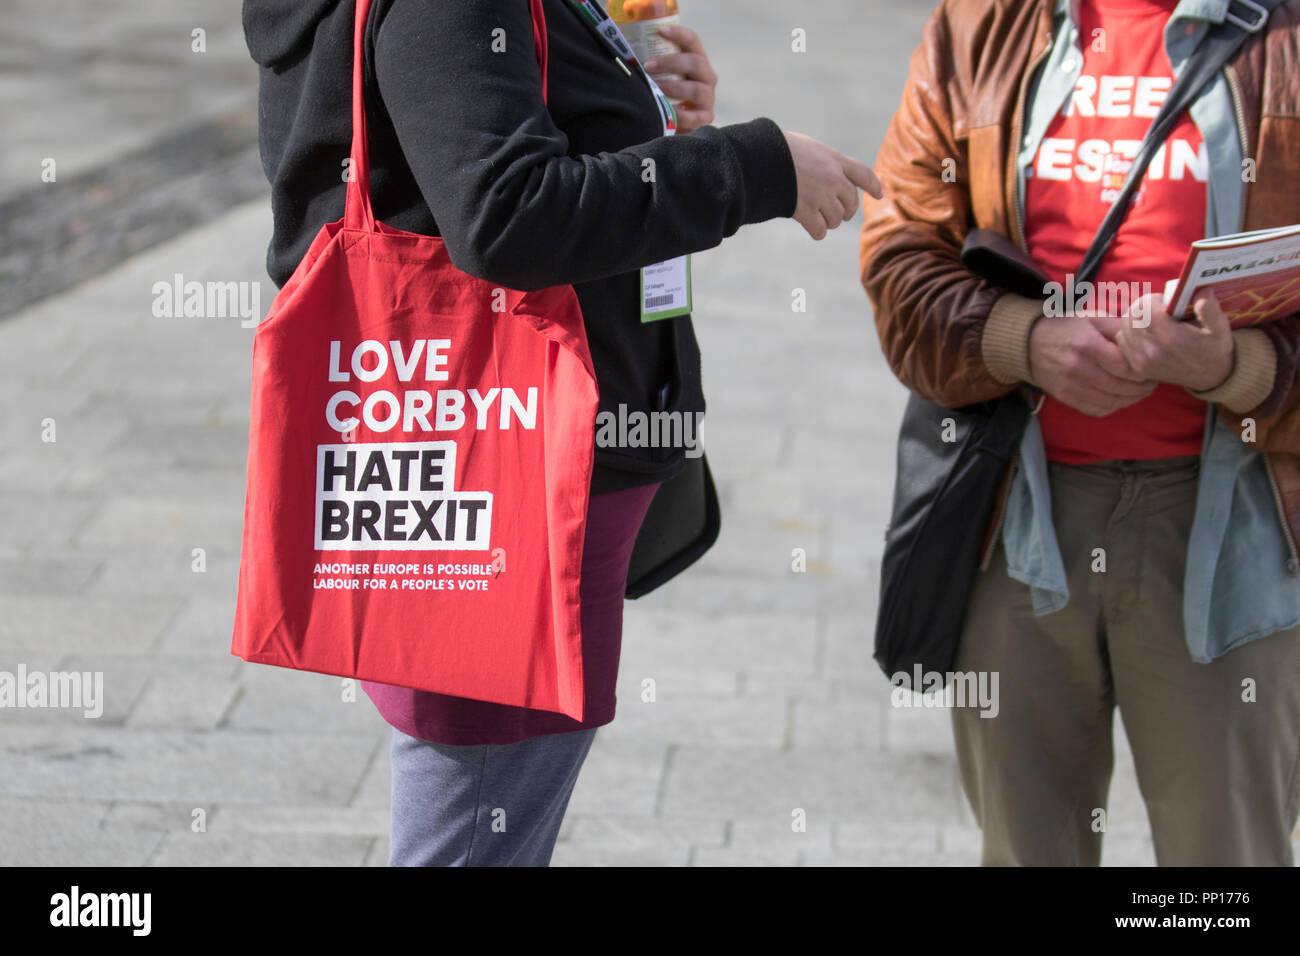 Liverpool, Merseyside.  UK Weather 23/09/2018. Sunshine & showers greet delegates to the Labour Party Conference who have been given a red cloth shoulder bag lettered 'Love Corbyn Hate Brexit'  Credit; MediaWorldImages/AlamyLiveNews - Stock Image